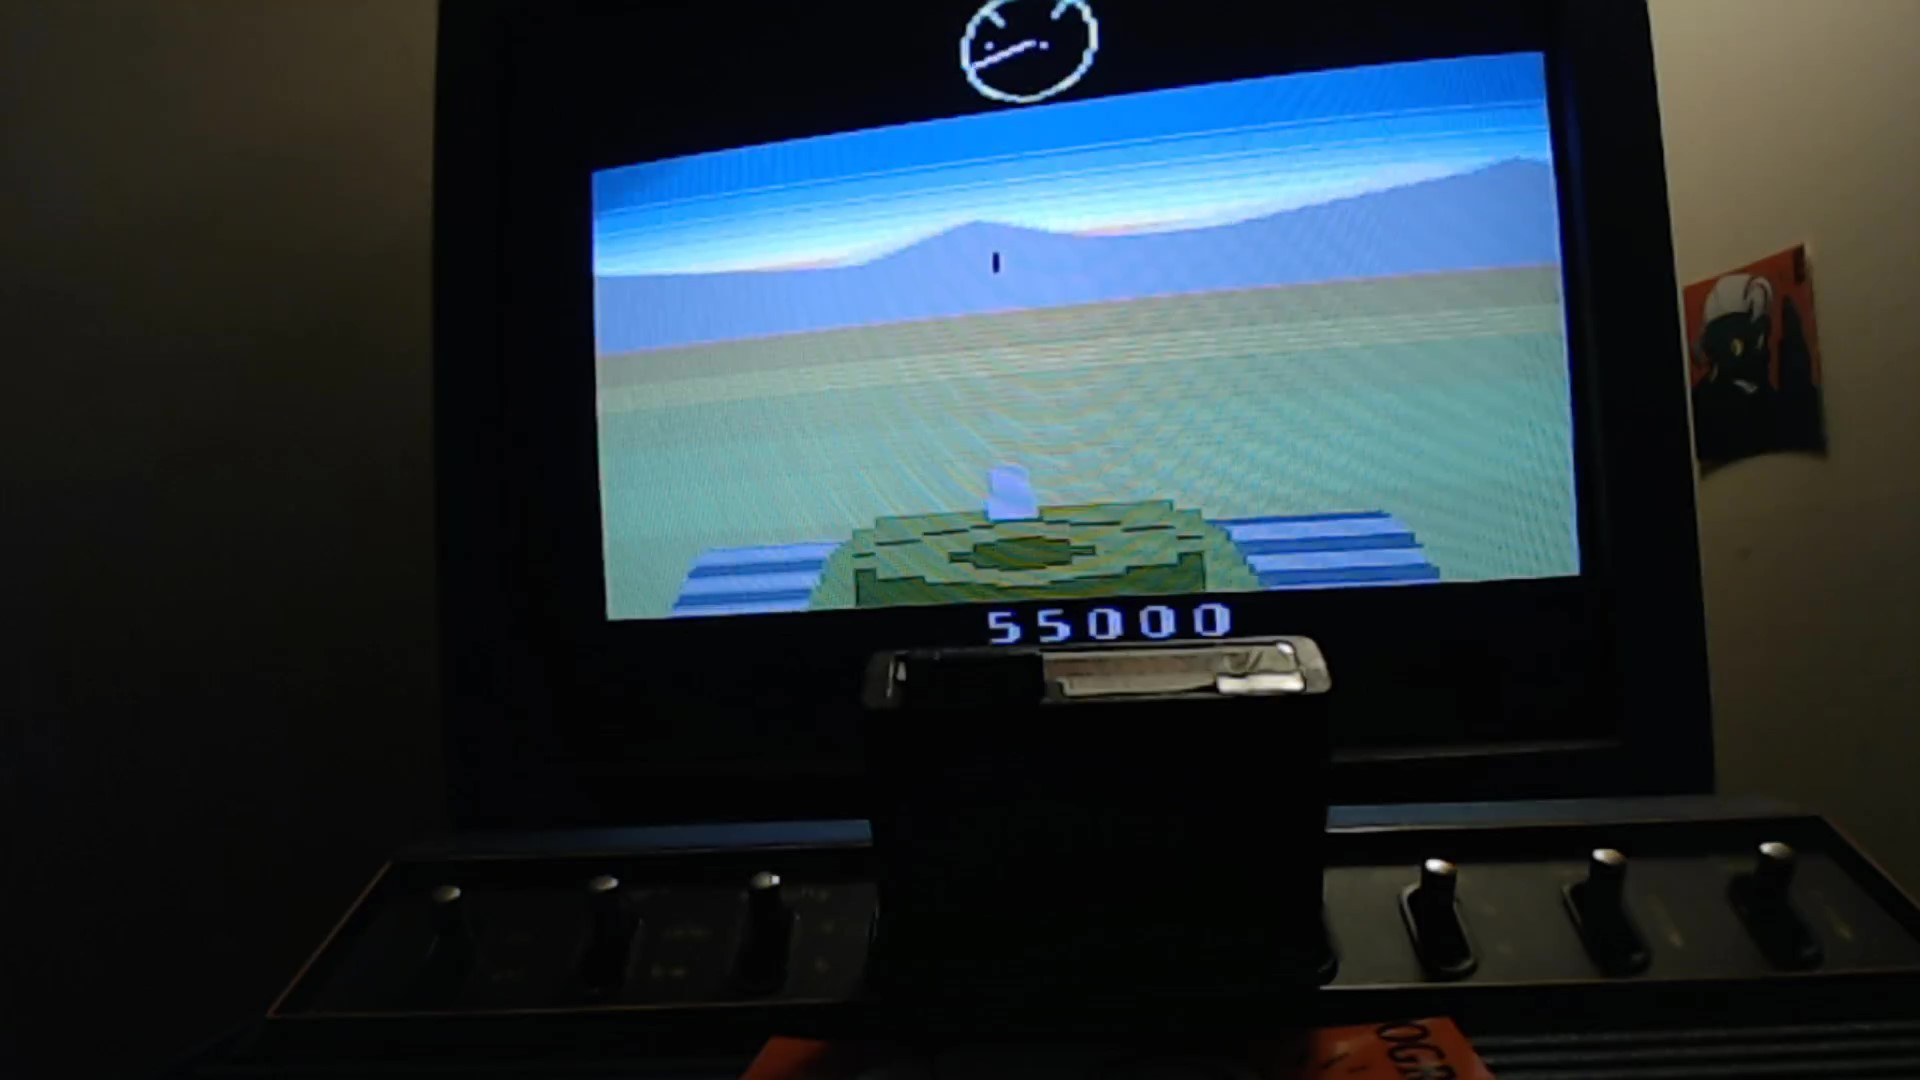 AwesomeOgre: Battlezone (Atari 2600) 55,000 points on 2020-05-18 11:08:16